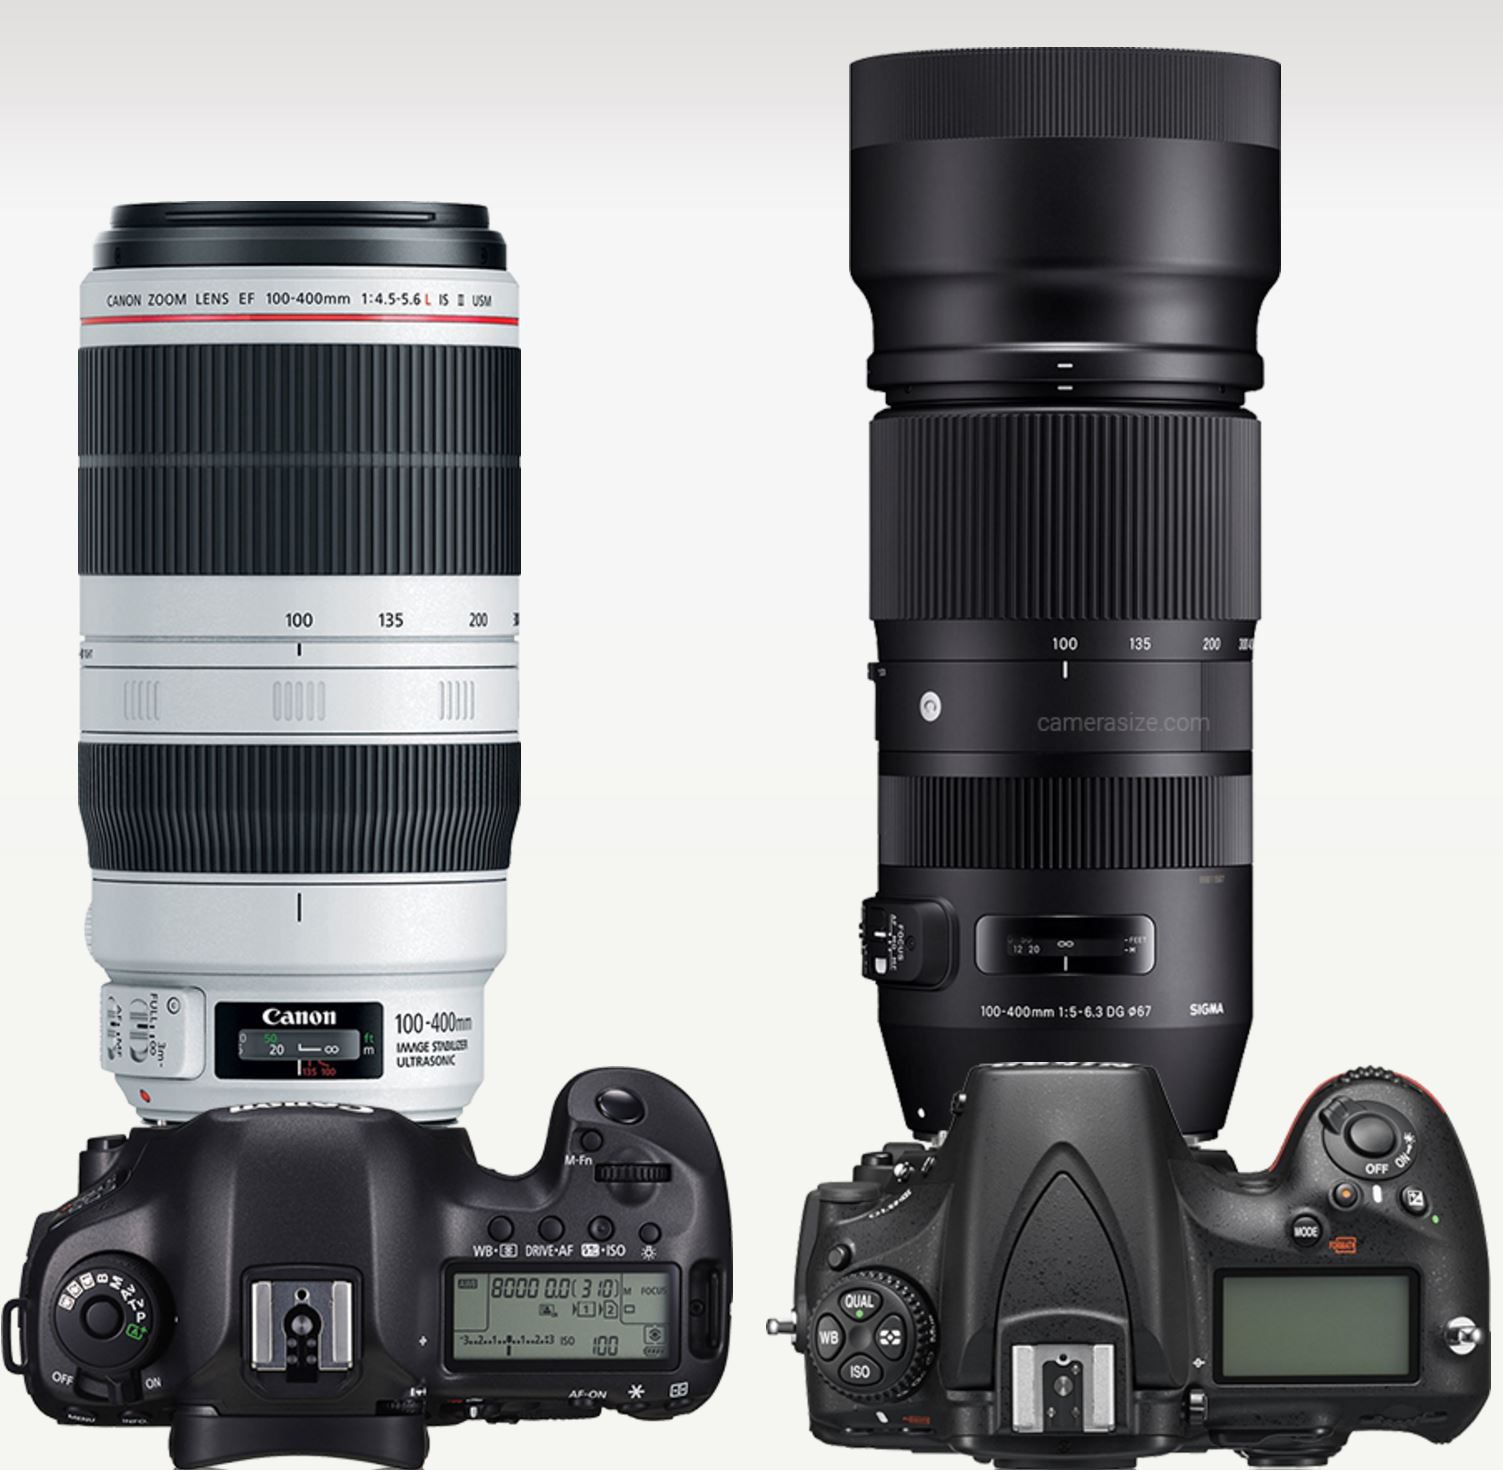 sony rumored to announce fe 100 400mm g lens next month camera news at cameraegg. Black Bedroom Furniture Sets. Home Design Ideas